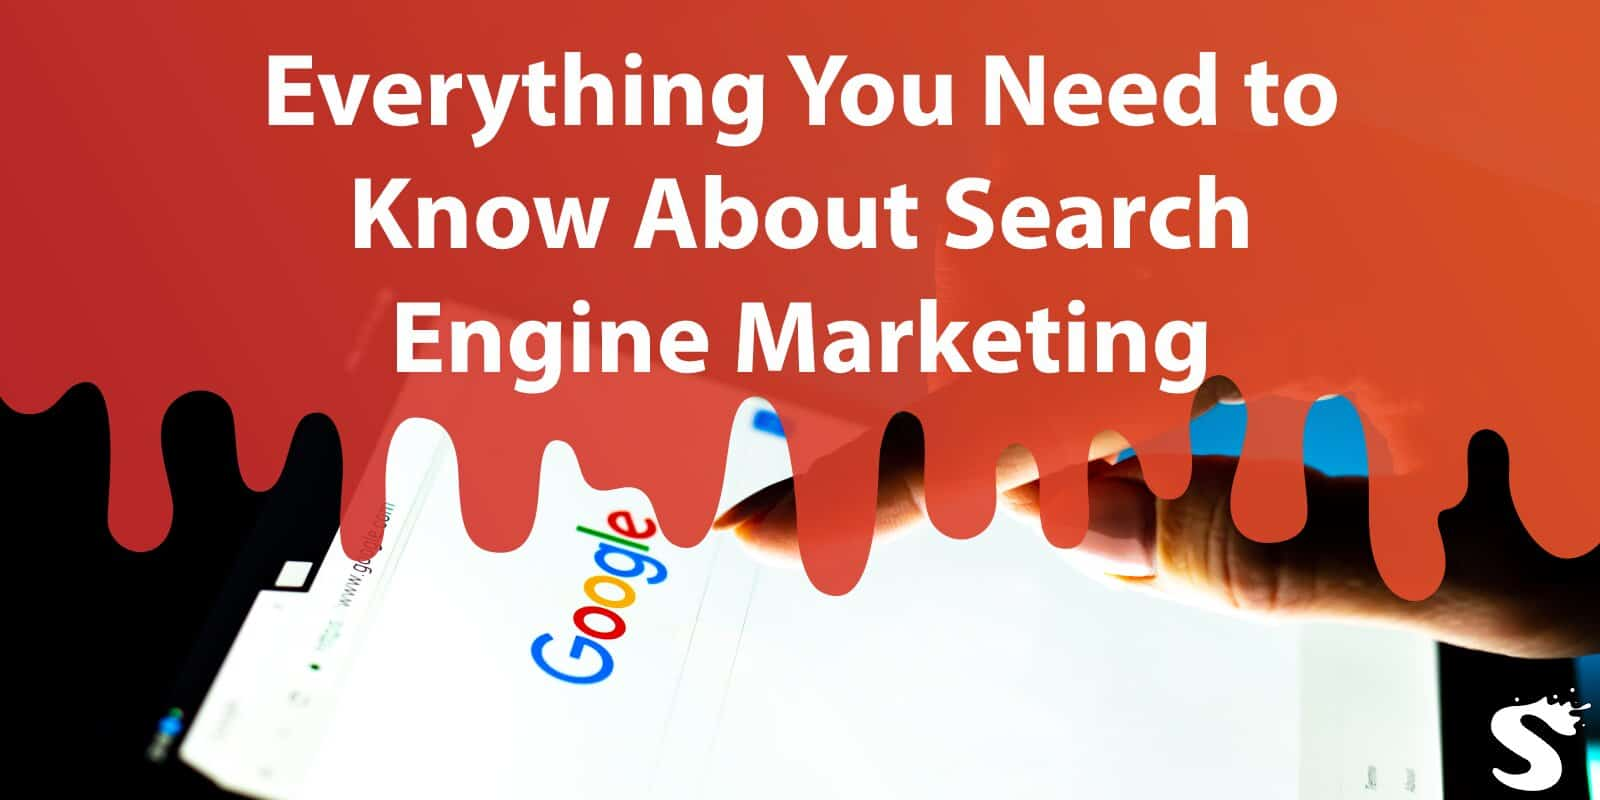 Everything You Need to Know About Search Engine Marketing